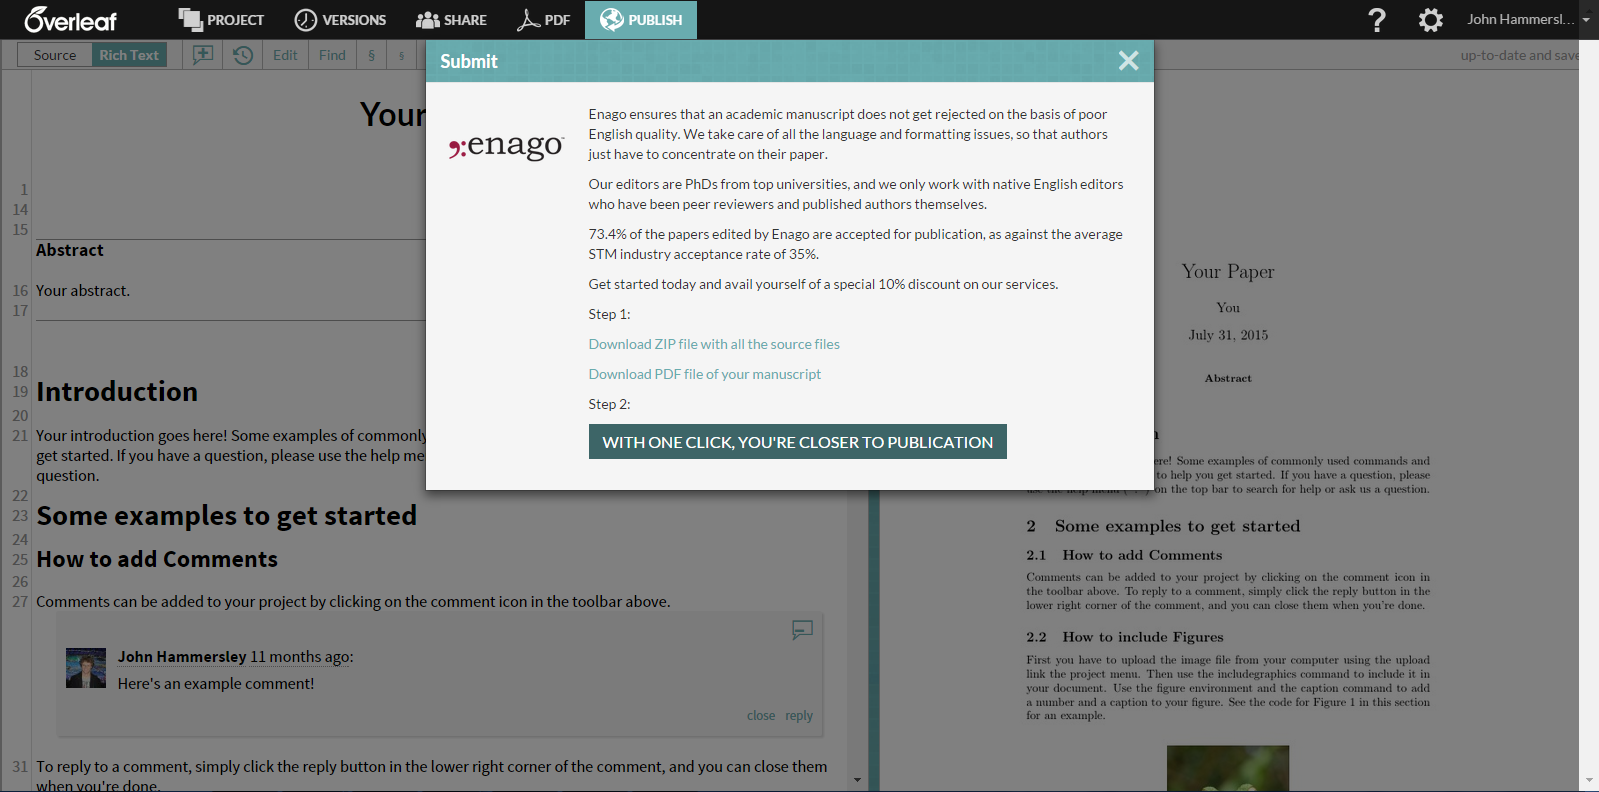 Enago in Overleaf publish menu modal